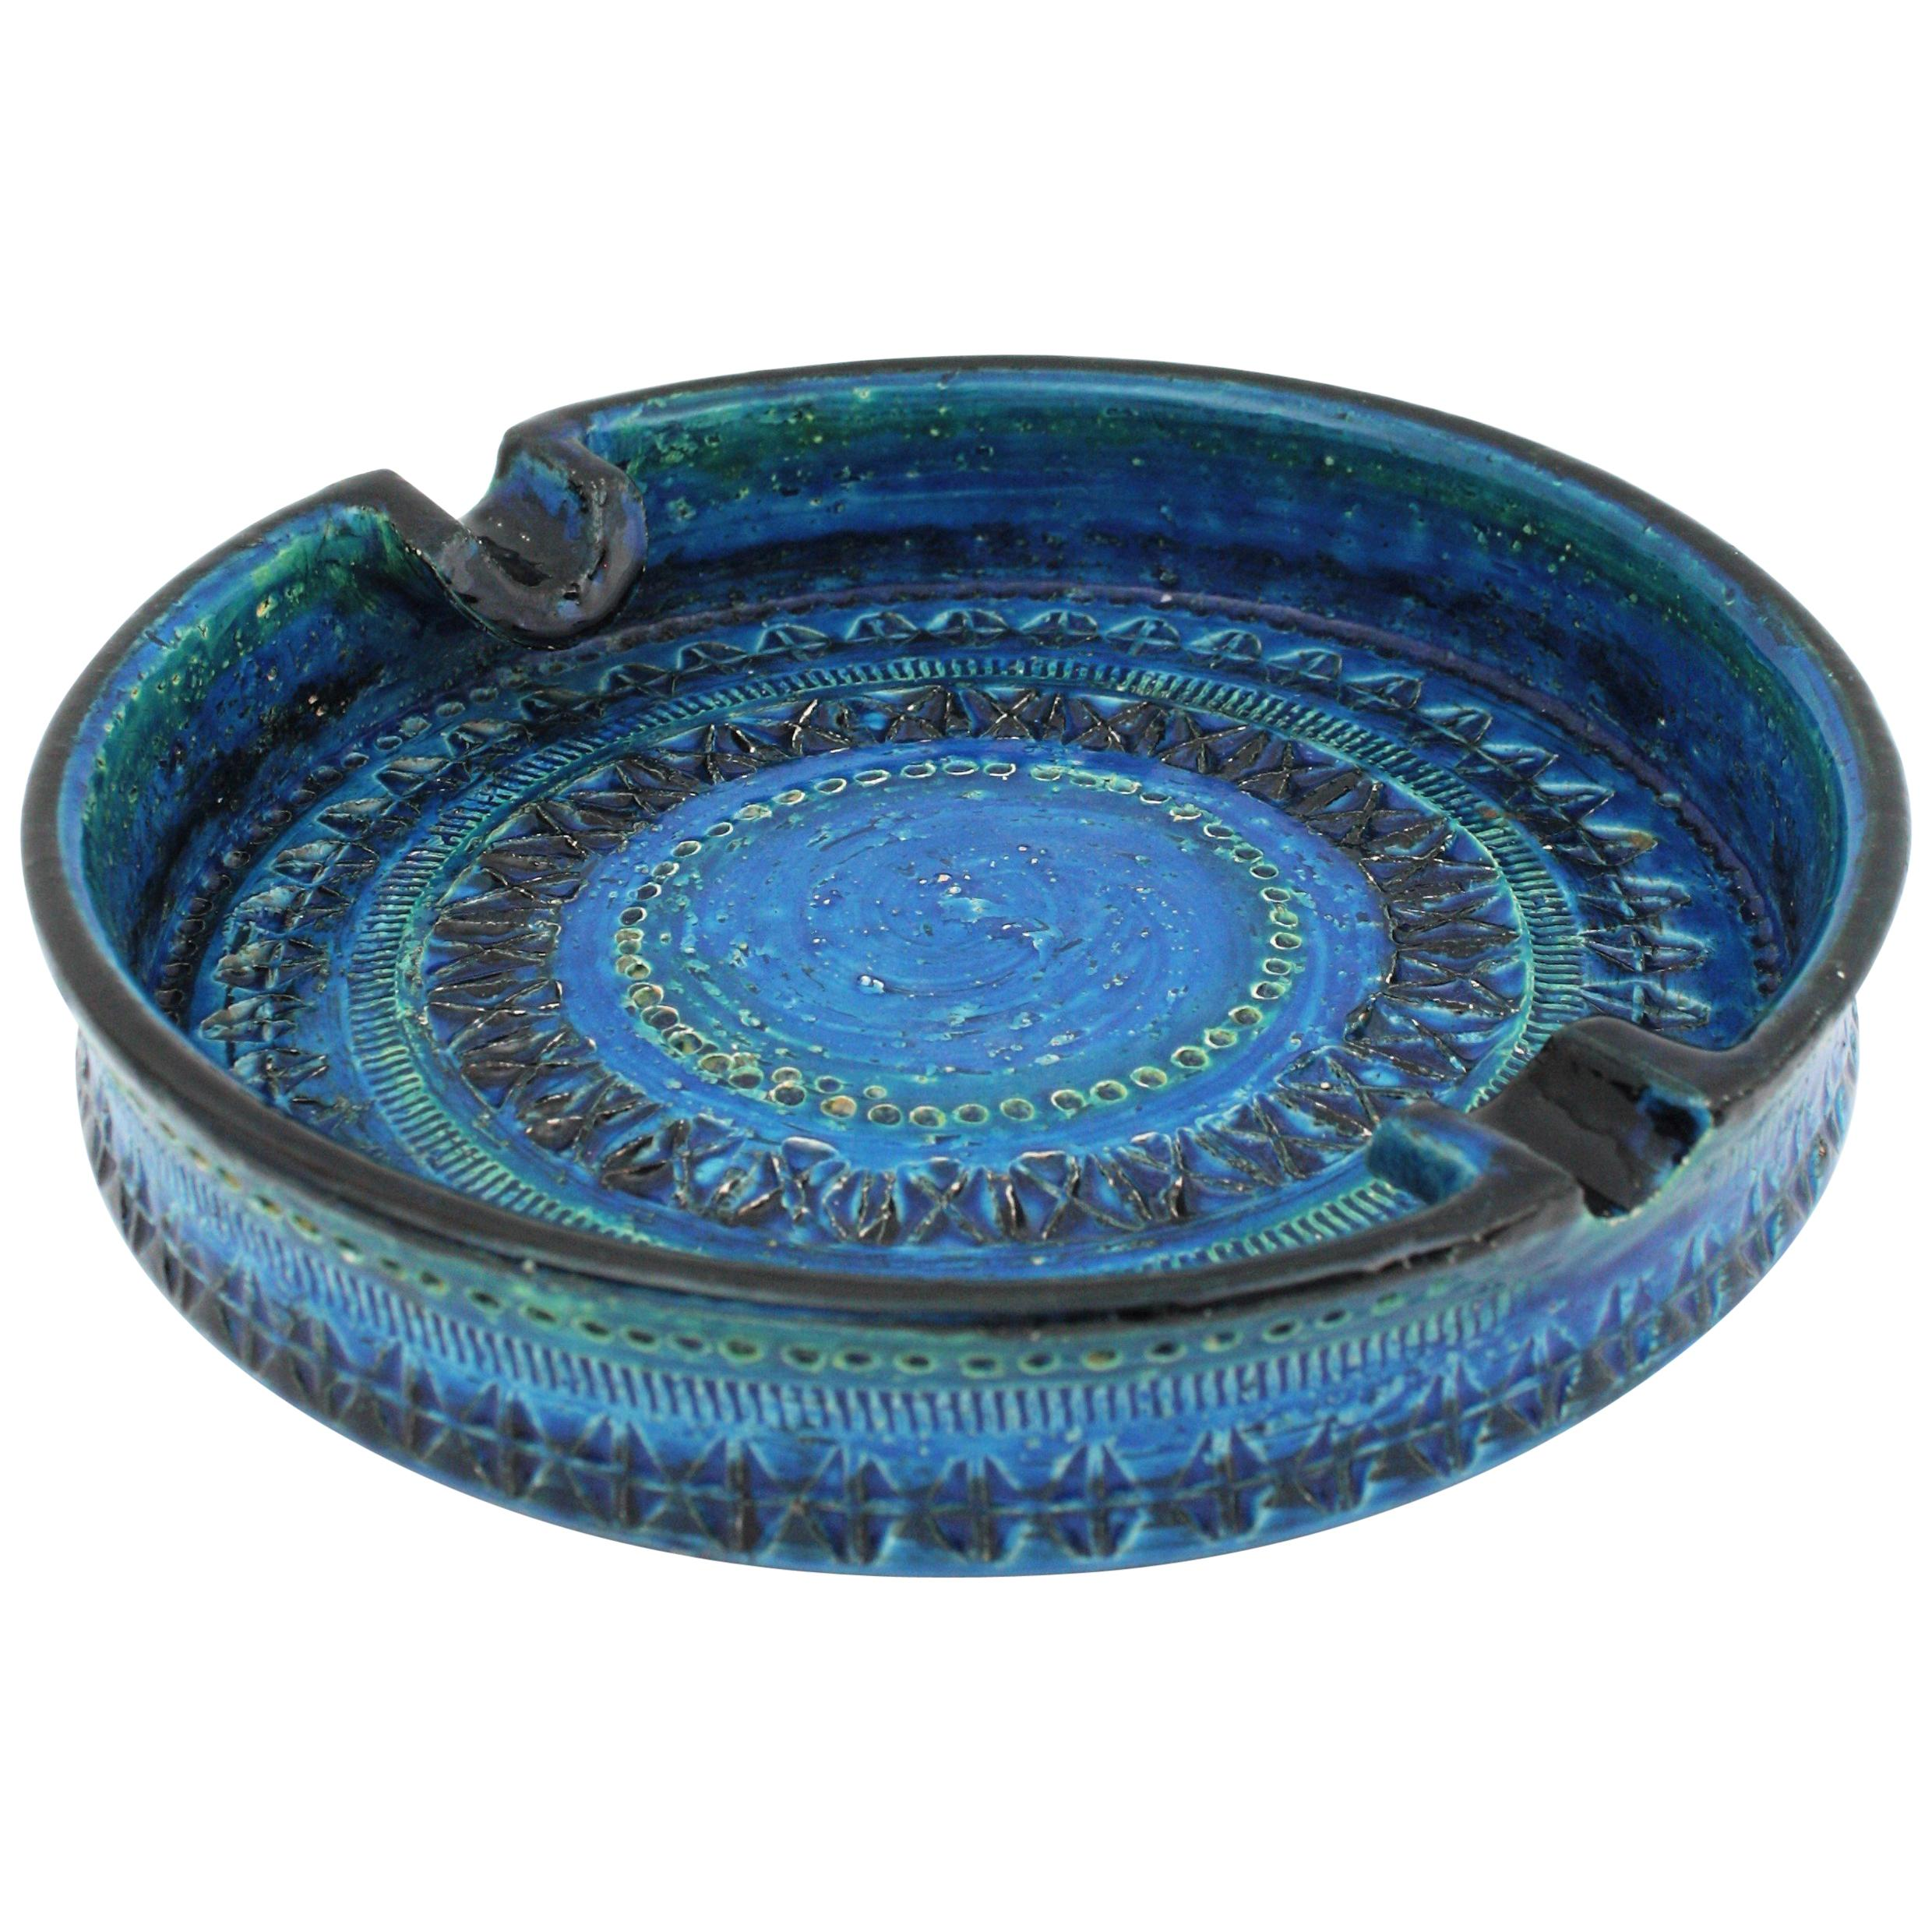 Italian 1950s Giant Aldo Londi Bitossi Rimini Blue Glazed Ceramic Round Ashtray